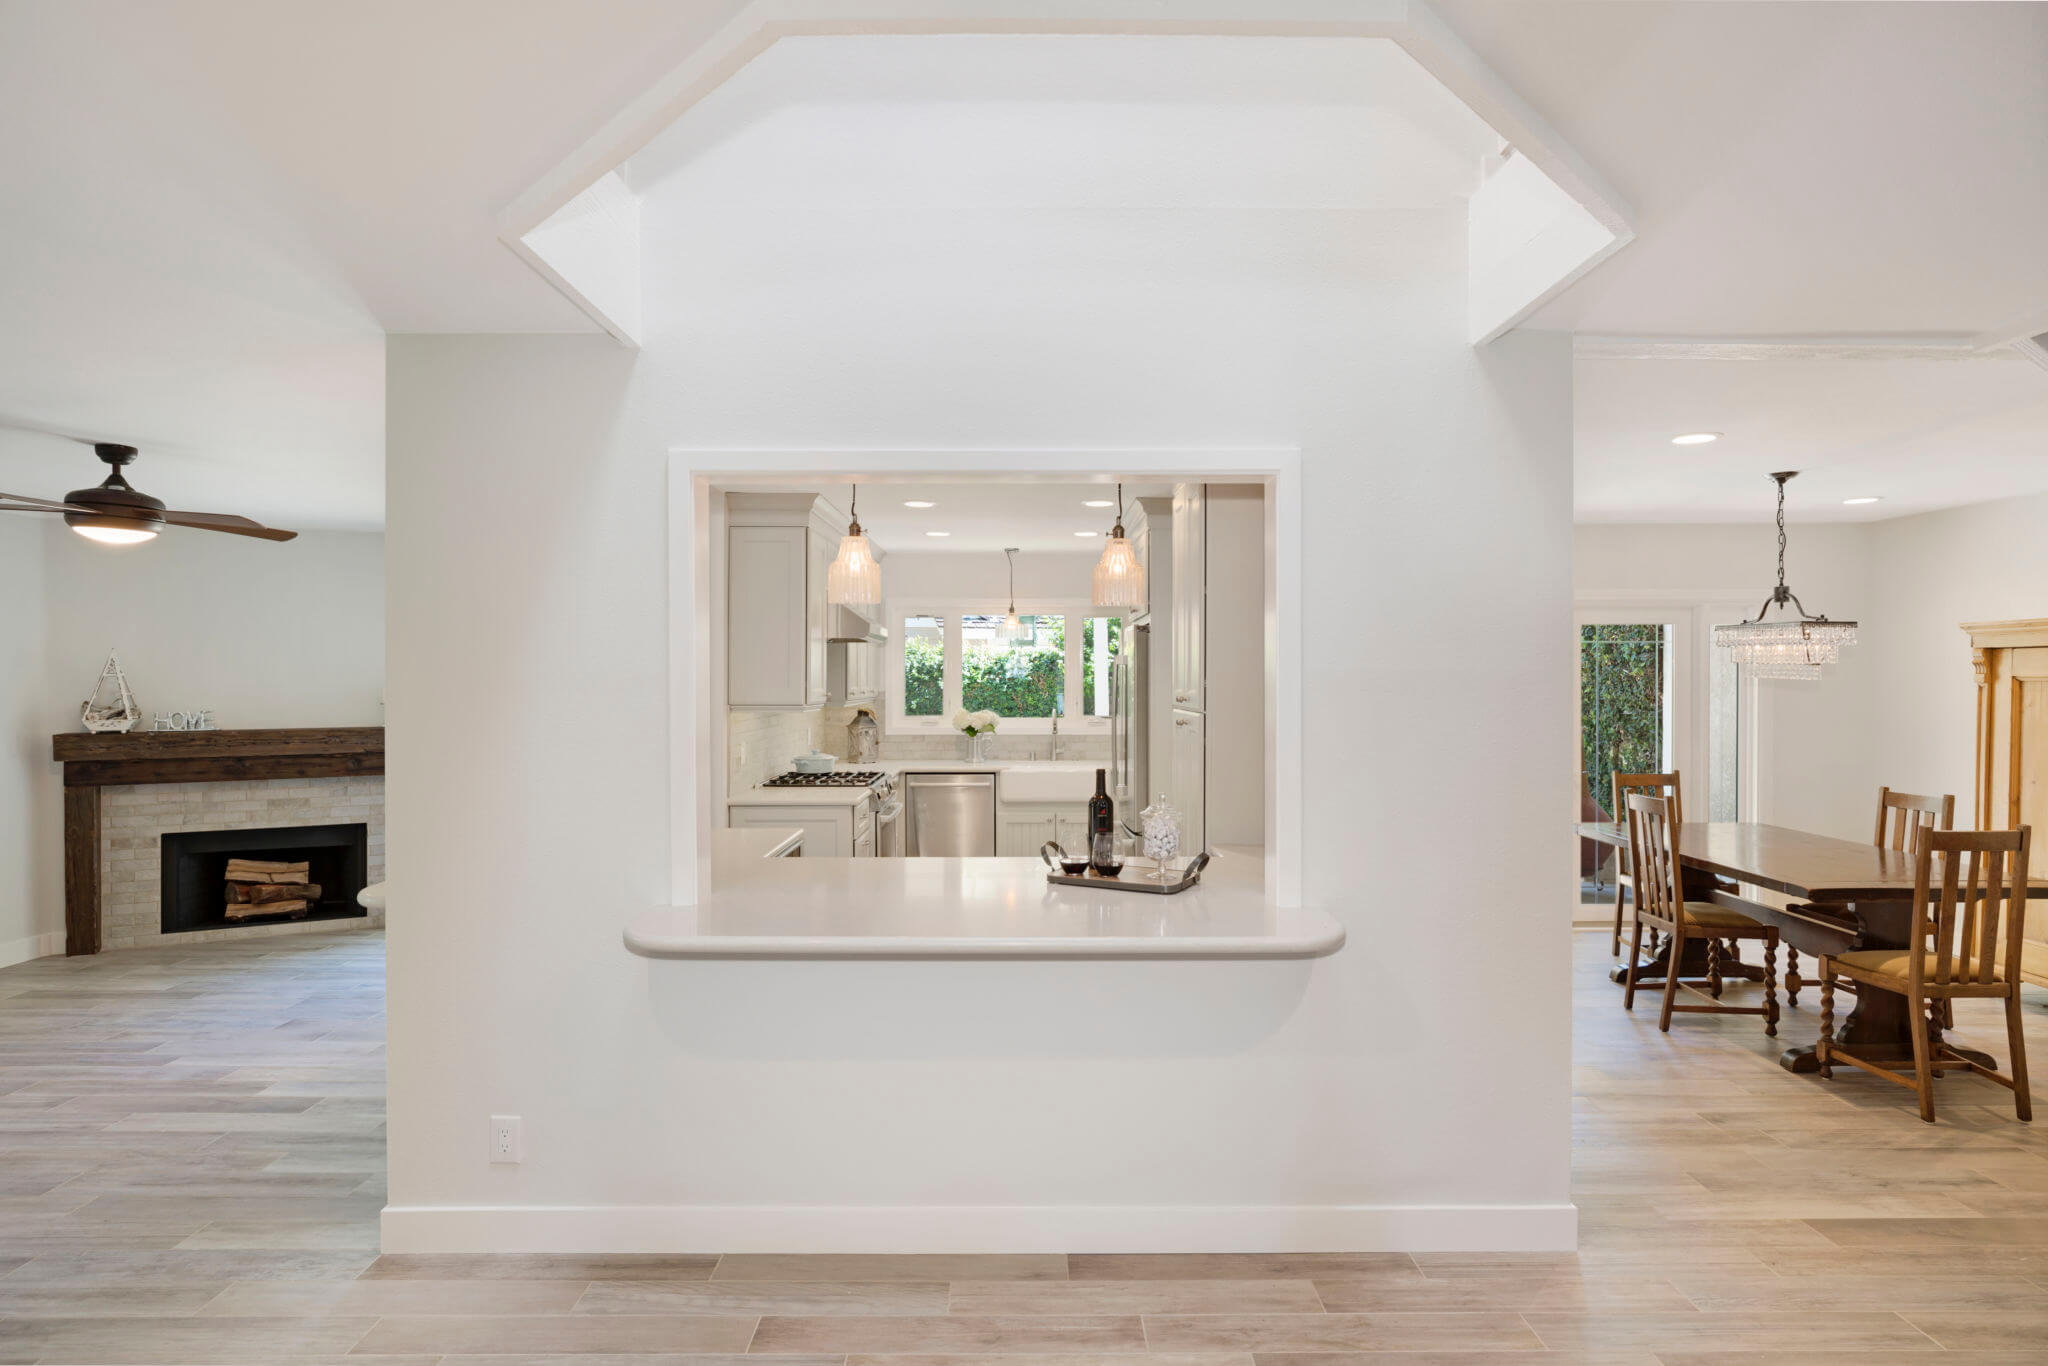 Whole Home Remodel Orange County, Orange County Remodeling, Luxury Residential Remodel